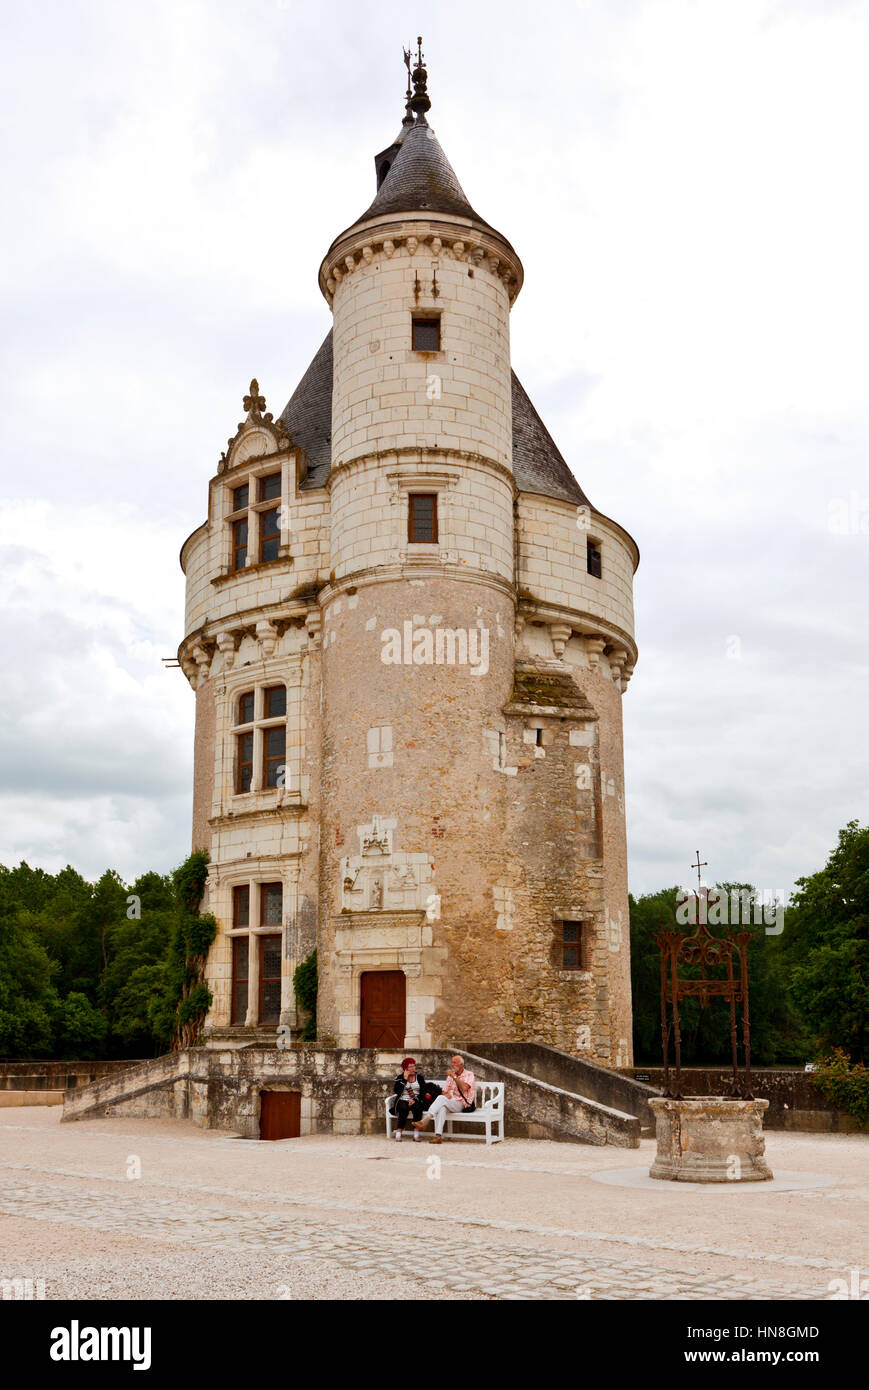 Chenonceau, France - June 5, 2010: The Marques Tower in front of the water castle Chateau Chenonceau in the Loire - Stock Image